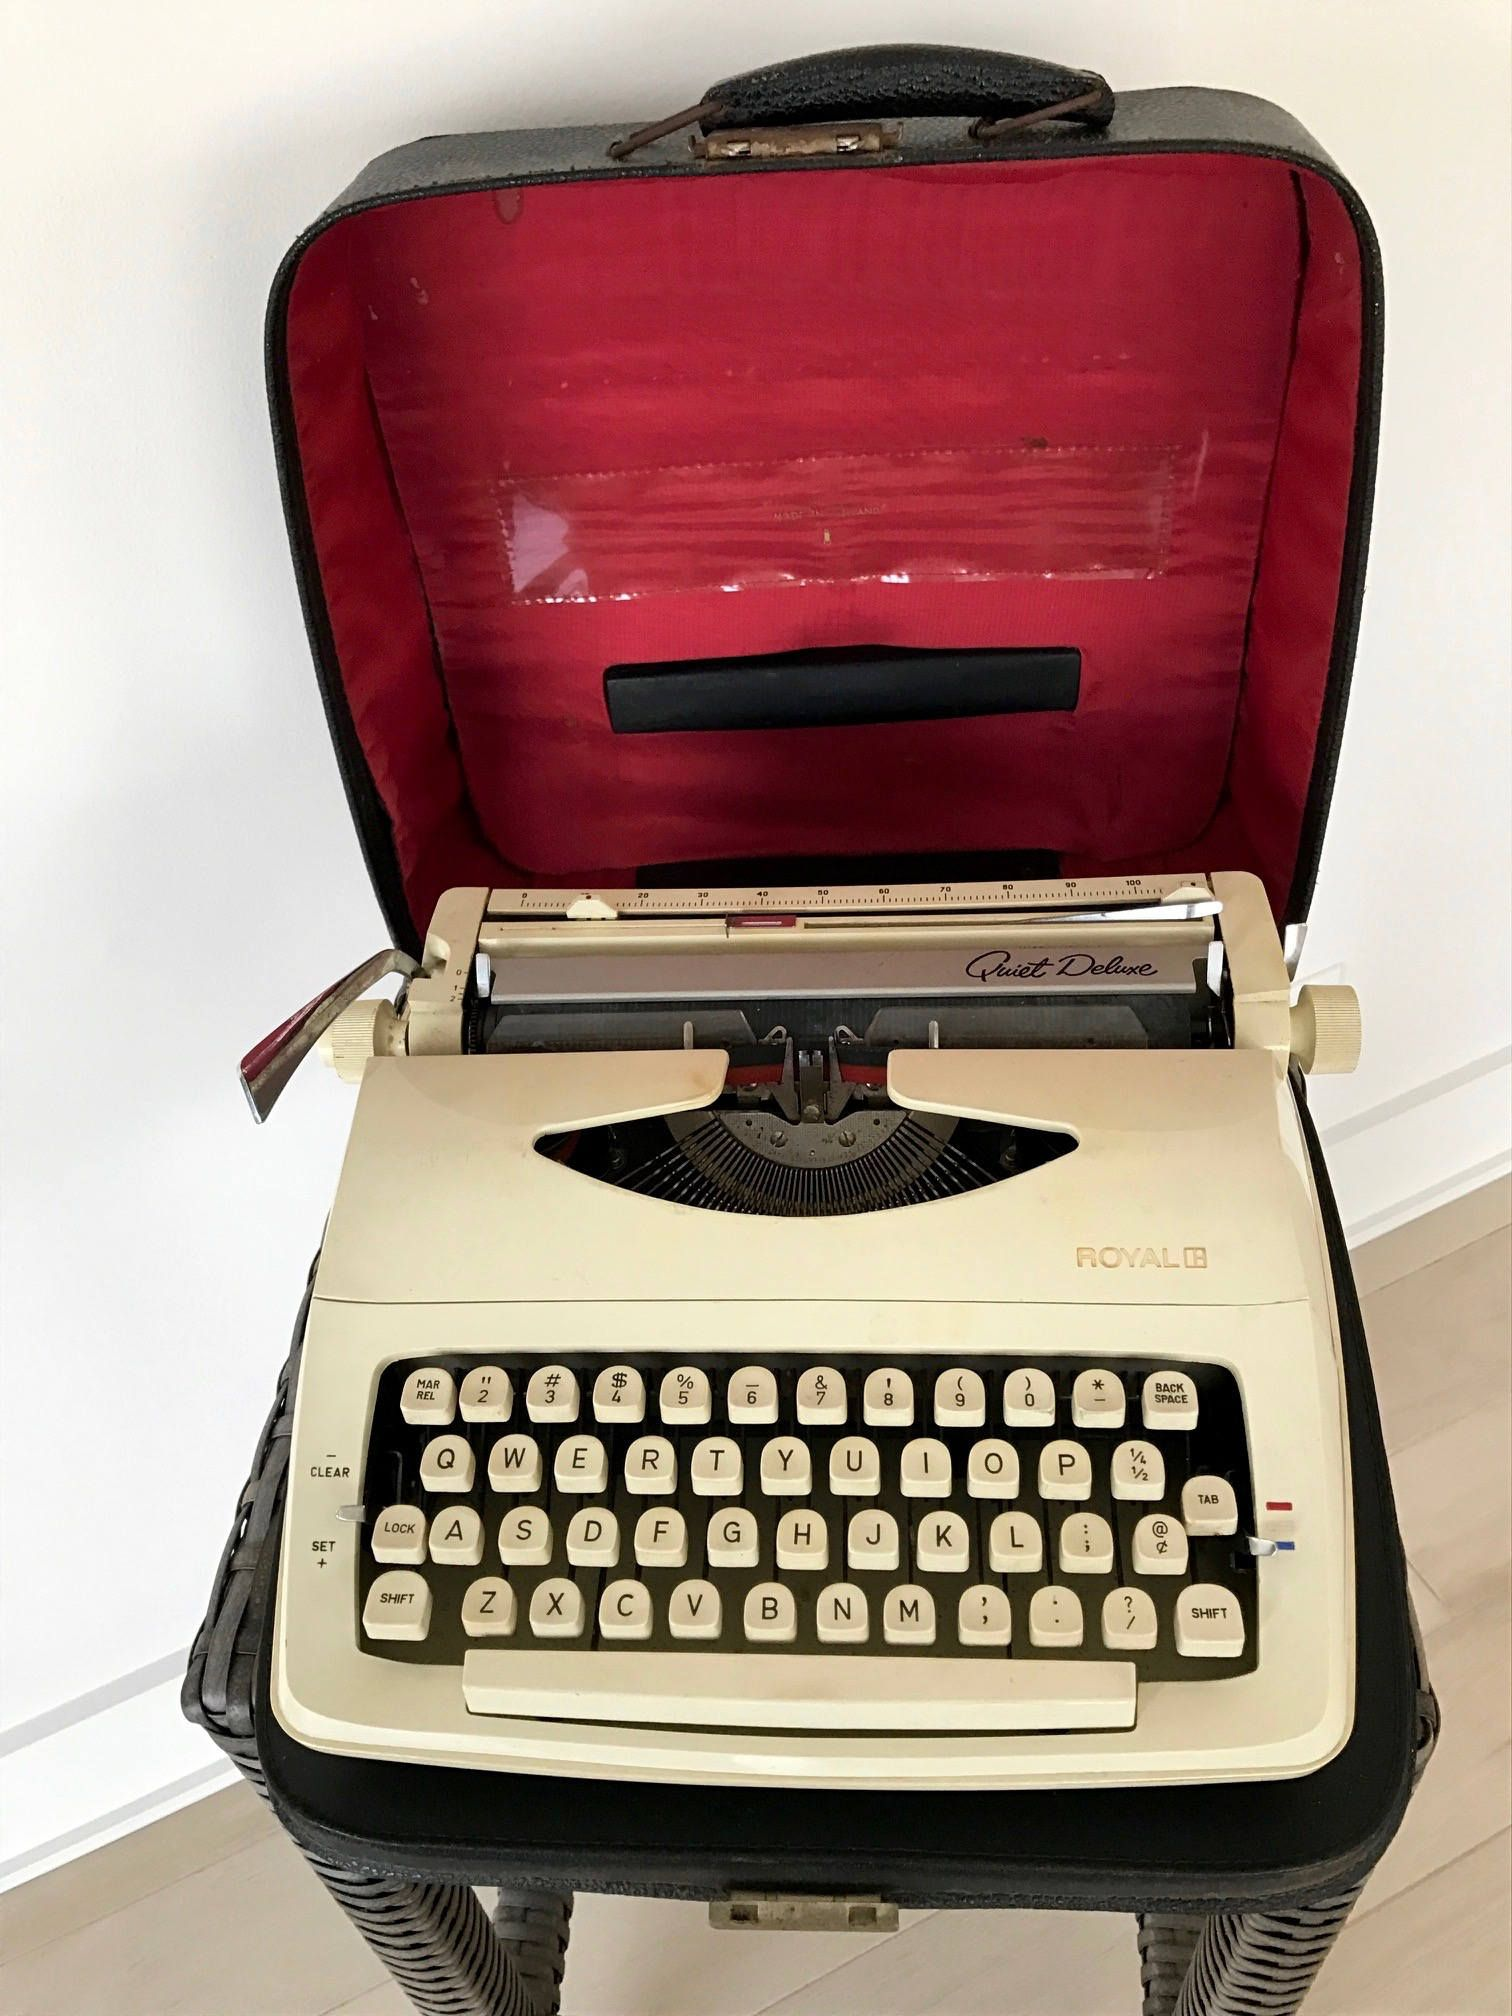 Vintage Royal Quiet Deluxe Typewriter With Carrying Case Mid Century Typewriter Retro Royal Portable Traveling Typewriter By Vintage Typewriter Flaws And All